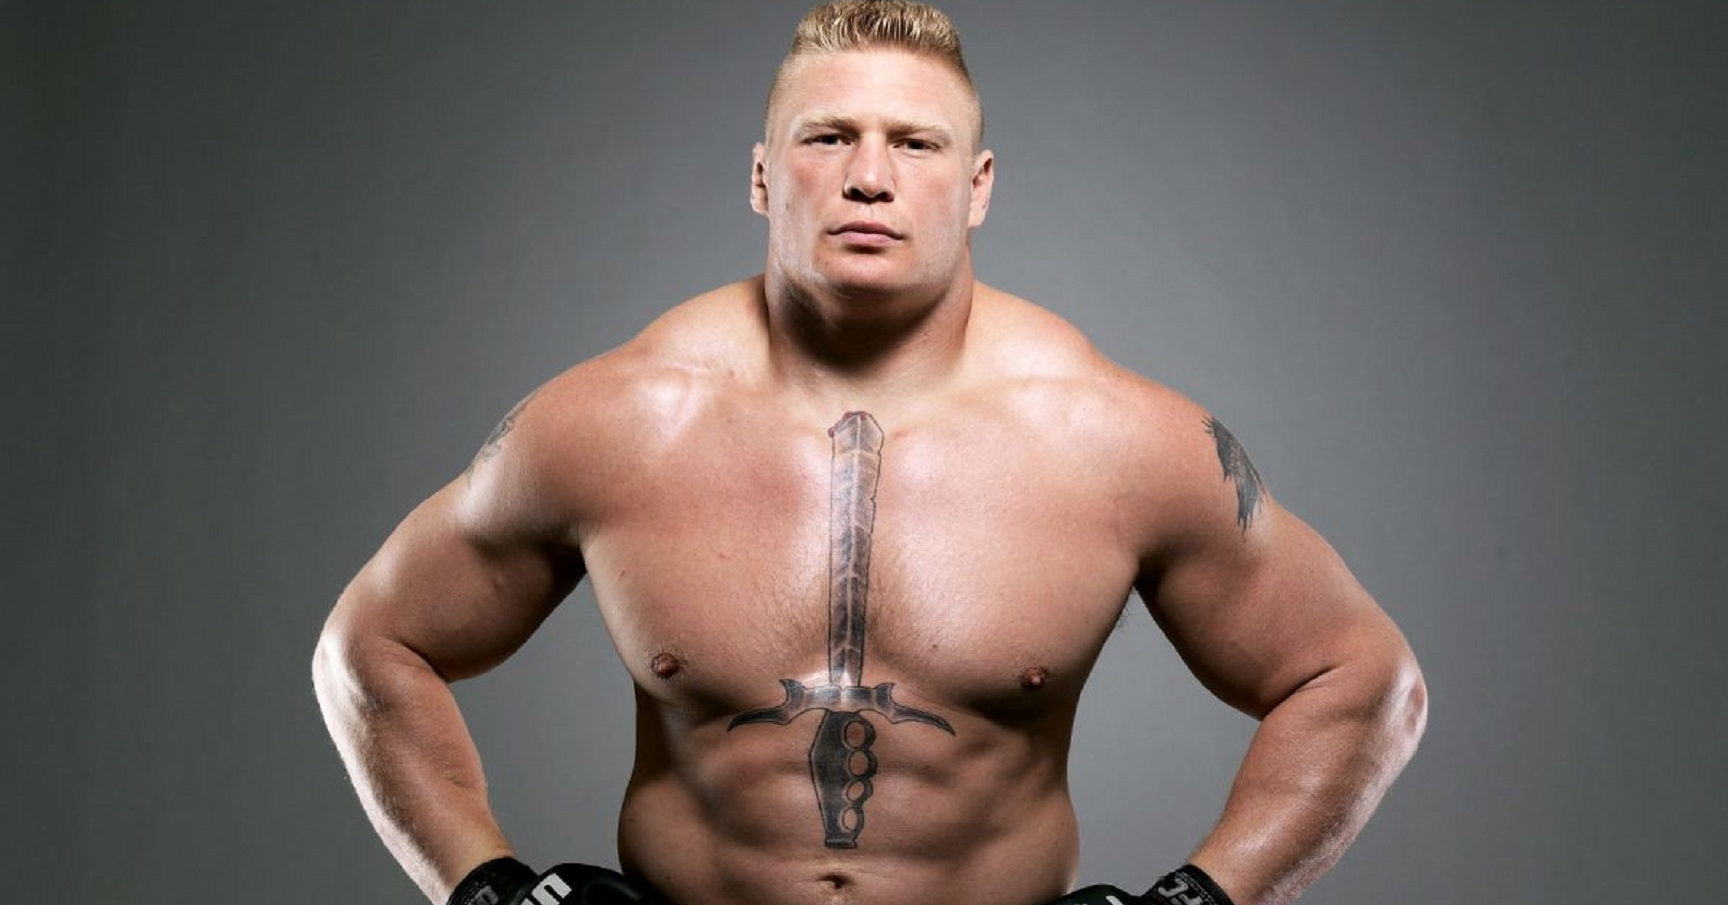 Brock Lesnar Returns to UFC After Given Opportunity to Use Steroids Without Fear of Testing